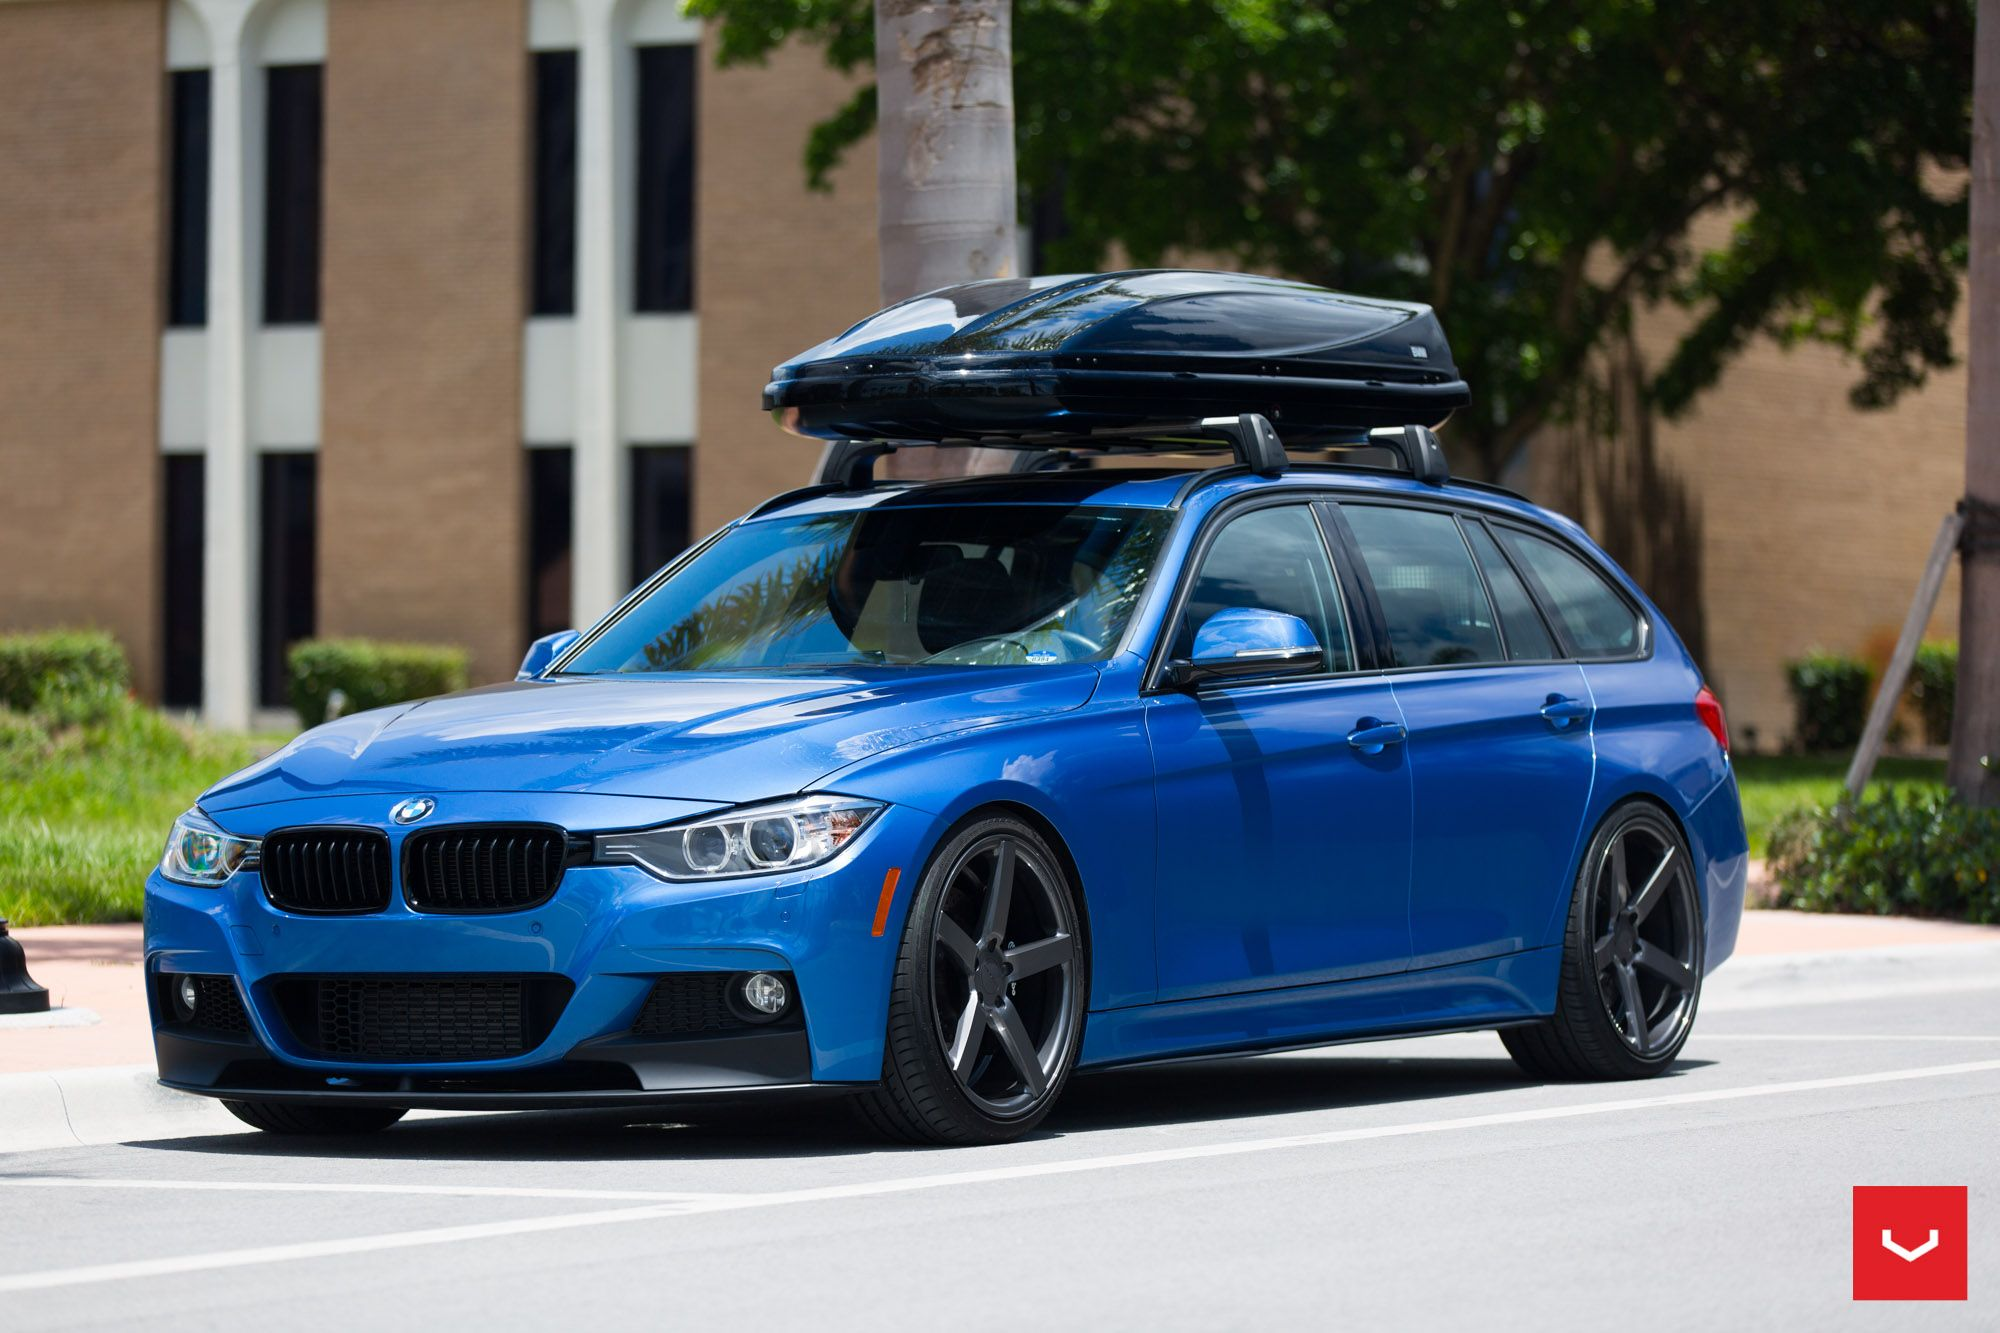 Bmw F31 328i Touring Vossen Xdrive Mperformance Mpackage